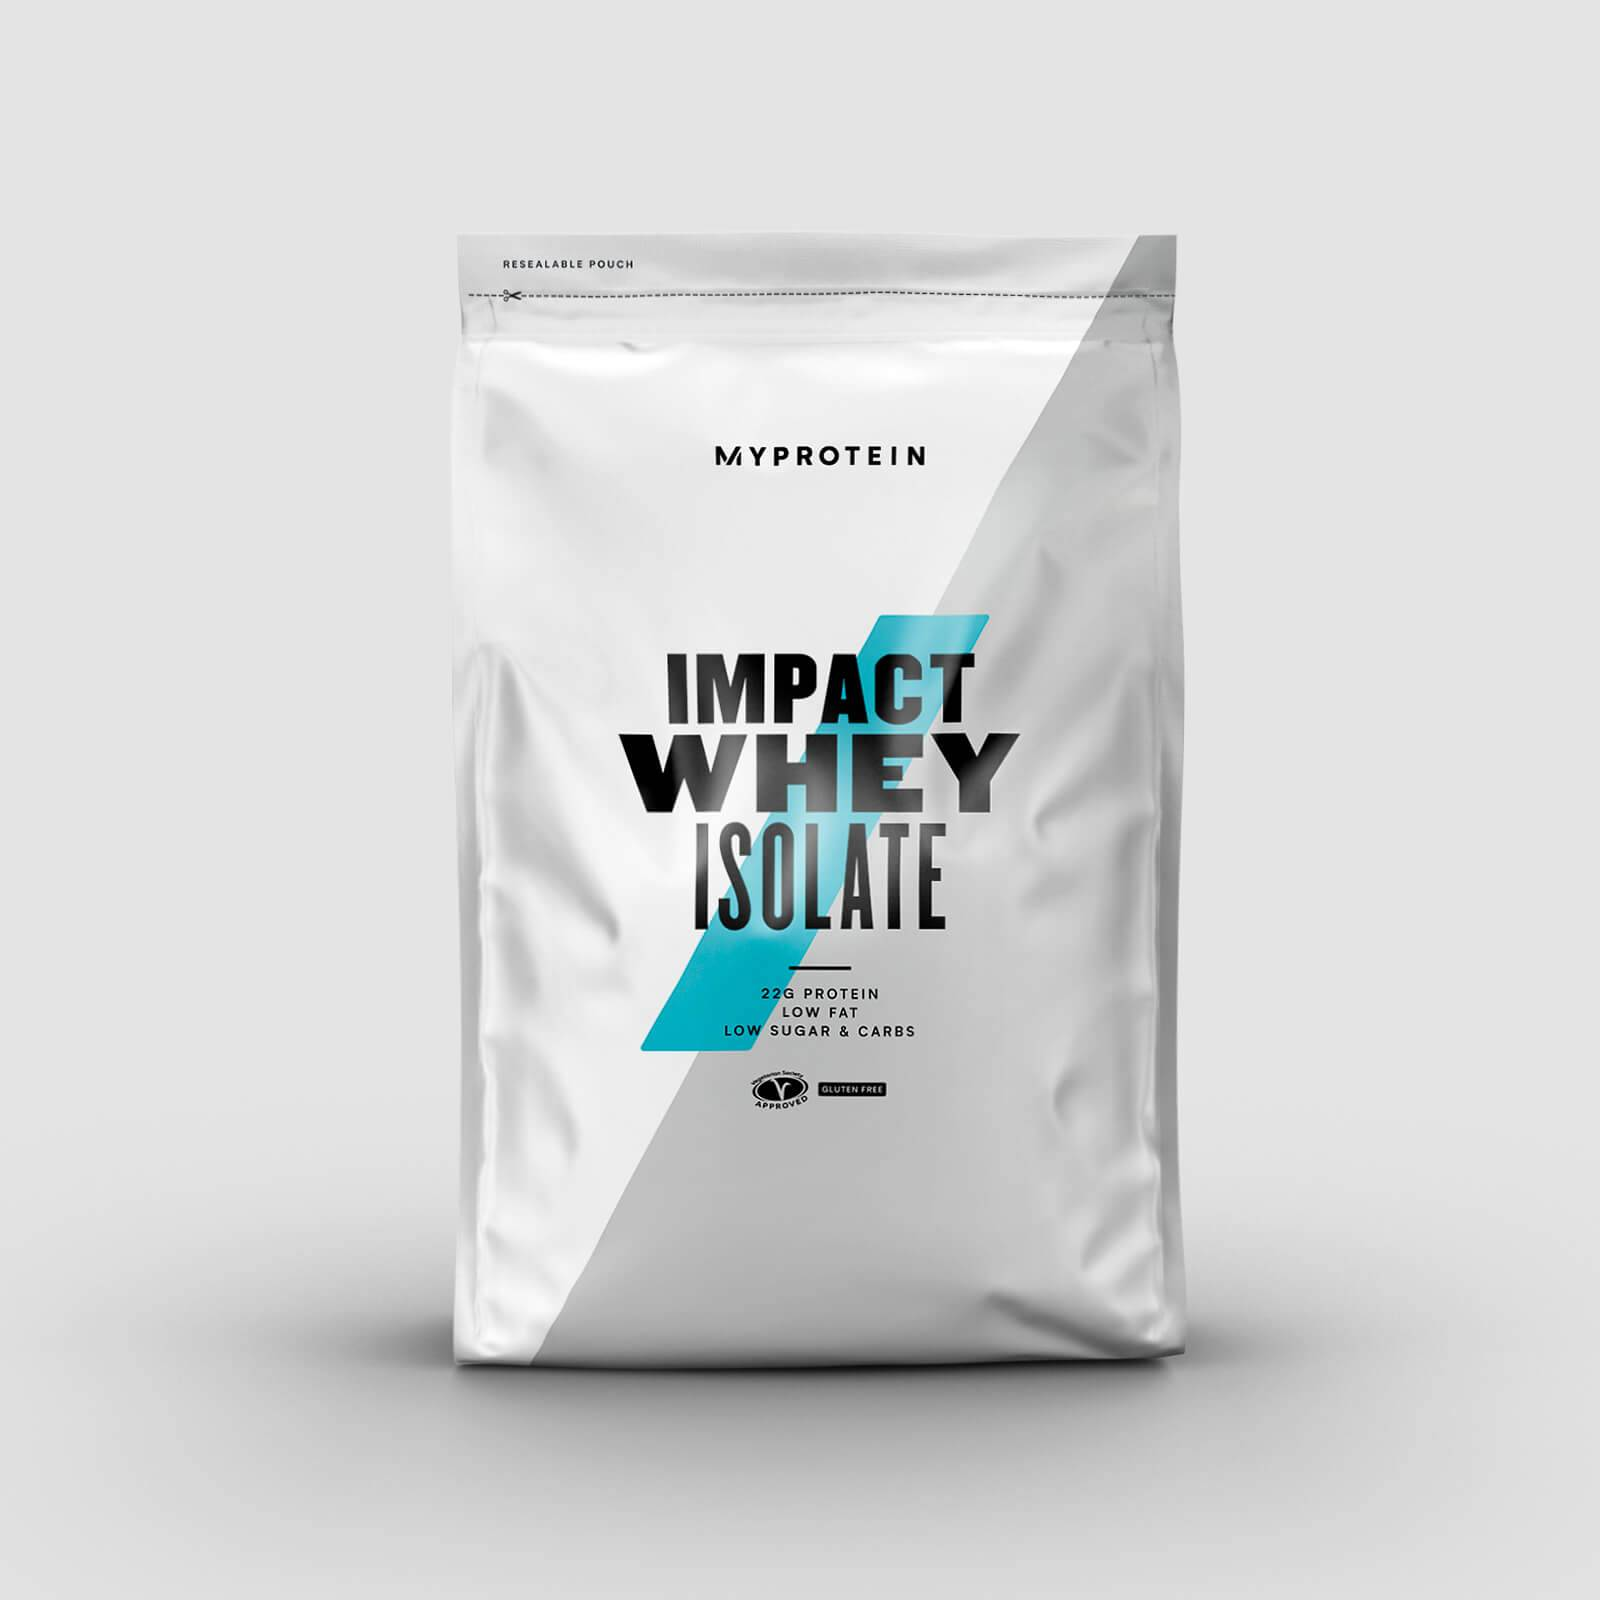 Myprotein Impact Whey Isolate - 1kg - Brownie Rocky Road